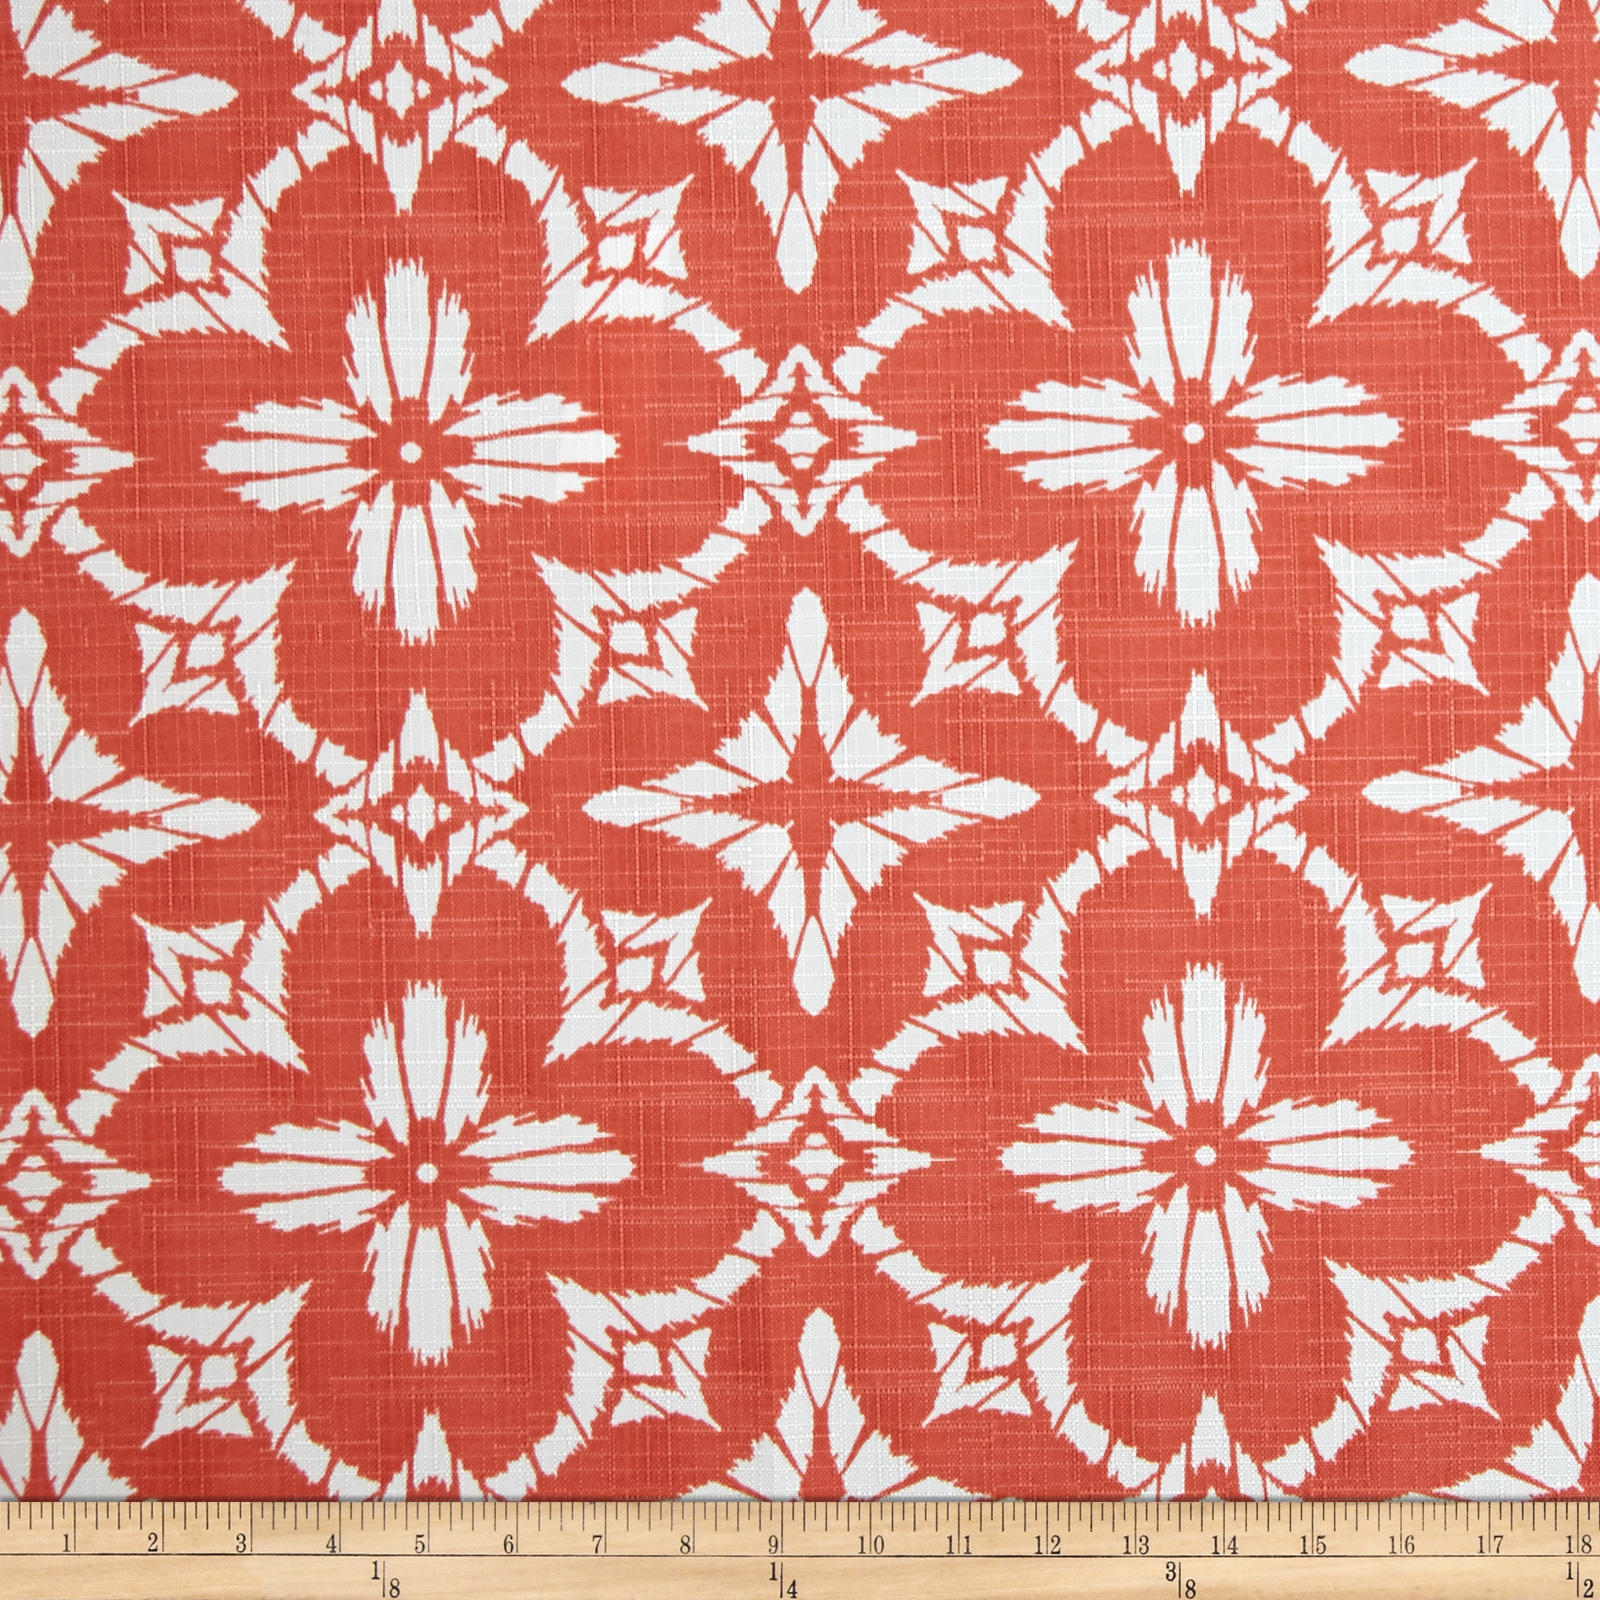 Richloom Indoor/Outdoor Aspidoras Coral Fabric By The Yard by Richloom in USA